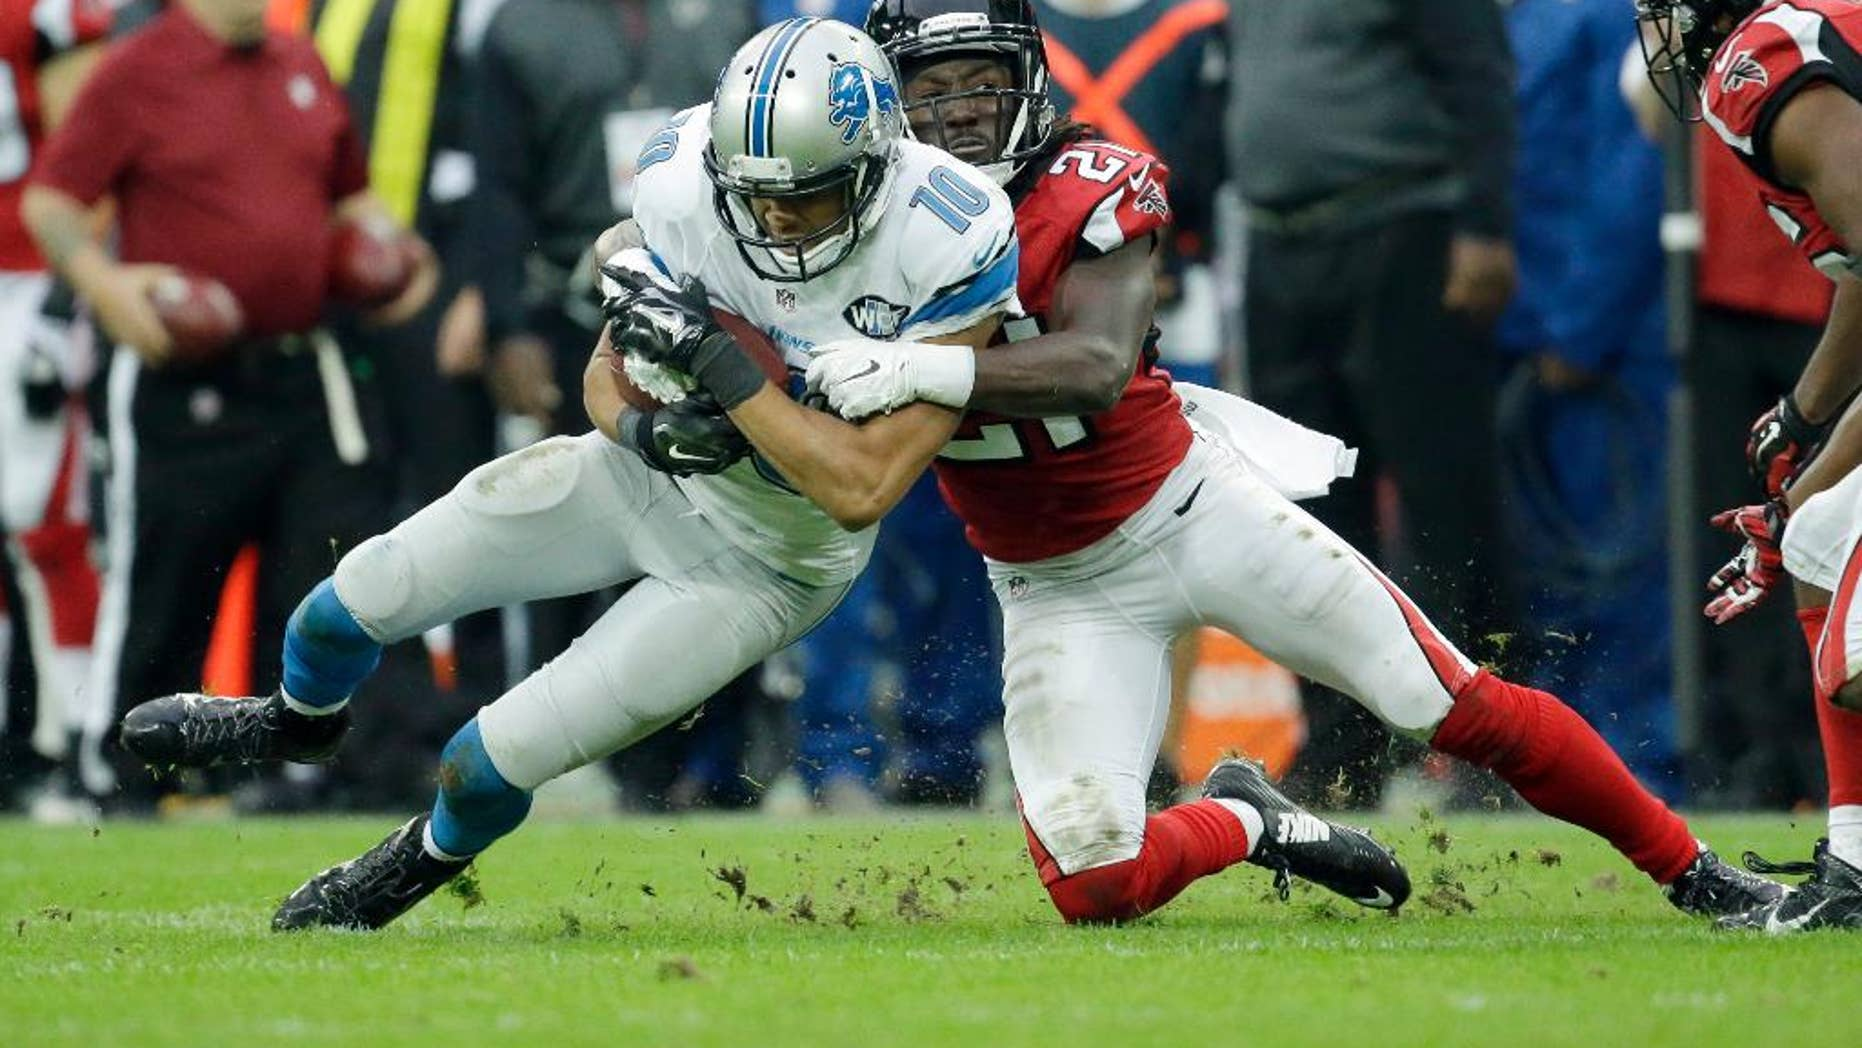 Atlanta Falcons cornerback Desmond Trufant (21) tackles Detroit Lions wide receiver Corey Fuller (10) in the second half of the NFL football game at Wembley Stadium, London, Sunday, Oct. 26, 2014.  (AP Photo/Matt Dunham)